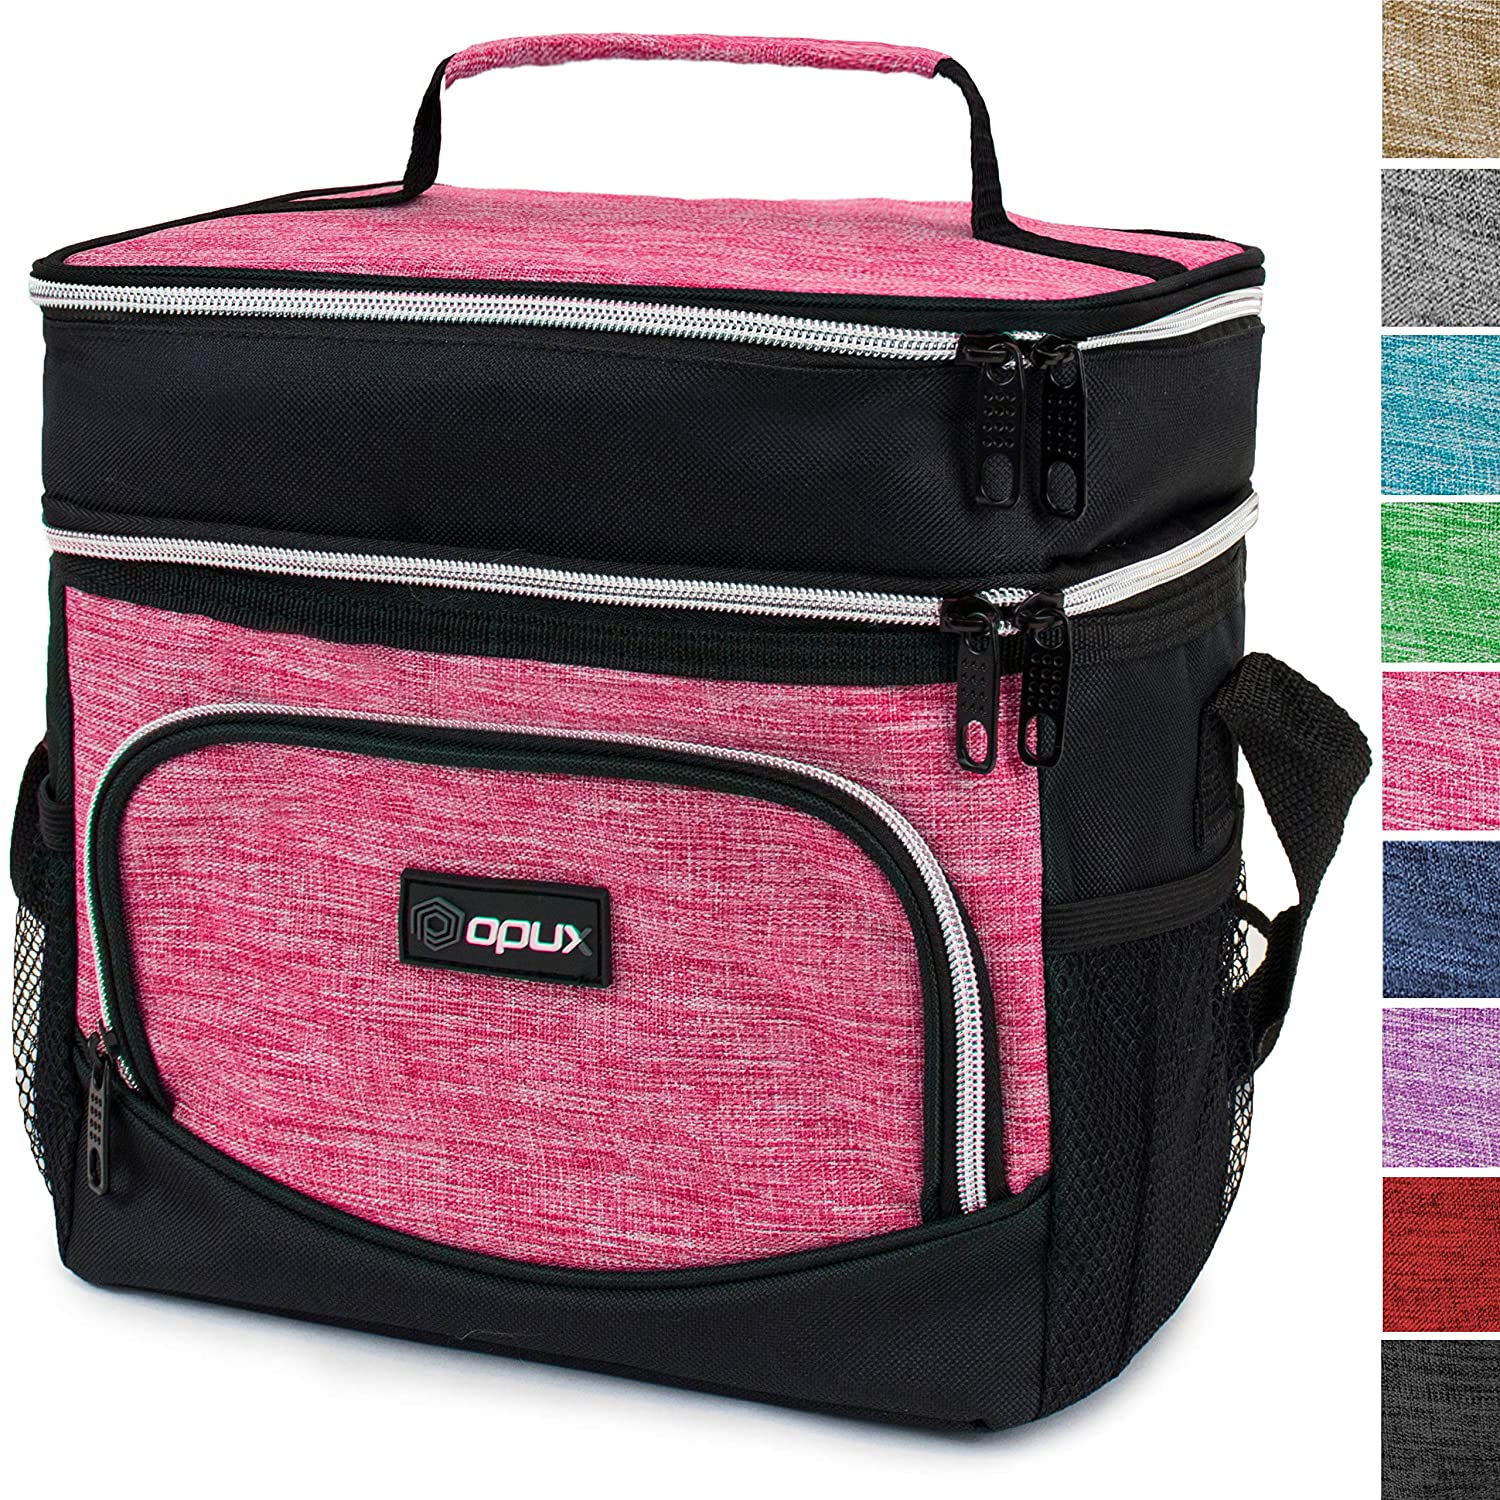 Opux Premium Thermal Insulated Dual Compartment Lunch Bag For Women | Double Deck Reusable Lunch Tote With Shoulder Strap, Soft Leakproof Liner | Medium Lunch Box For Work, Office (Heather Pink) by Opux